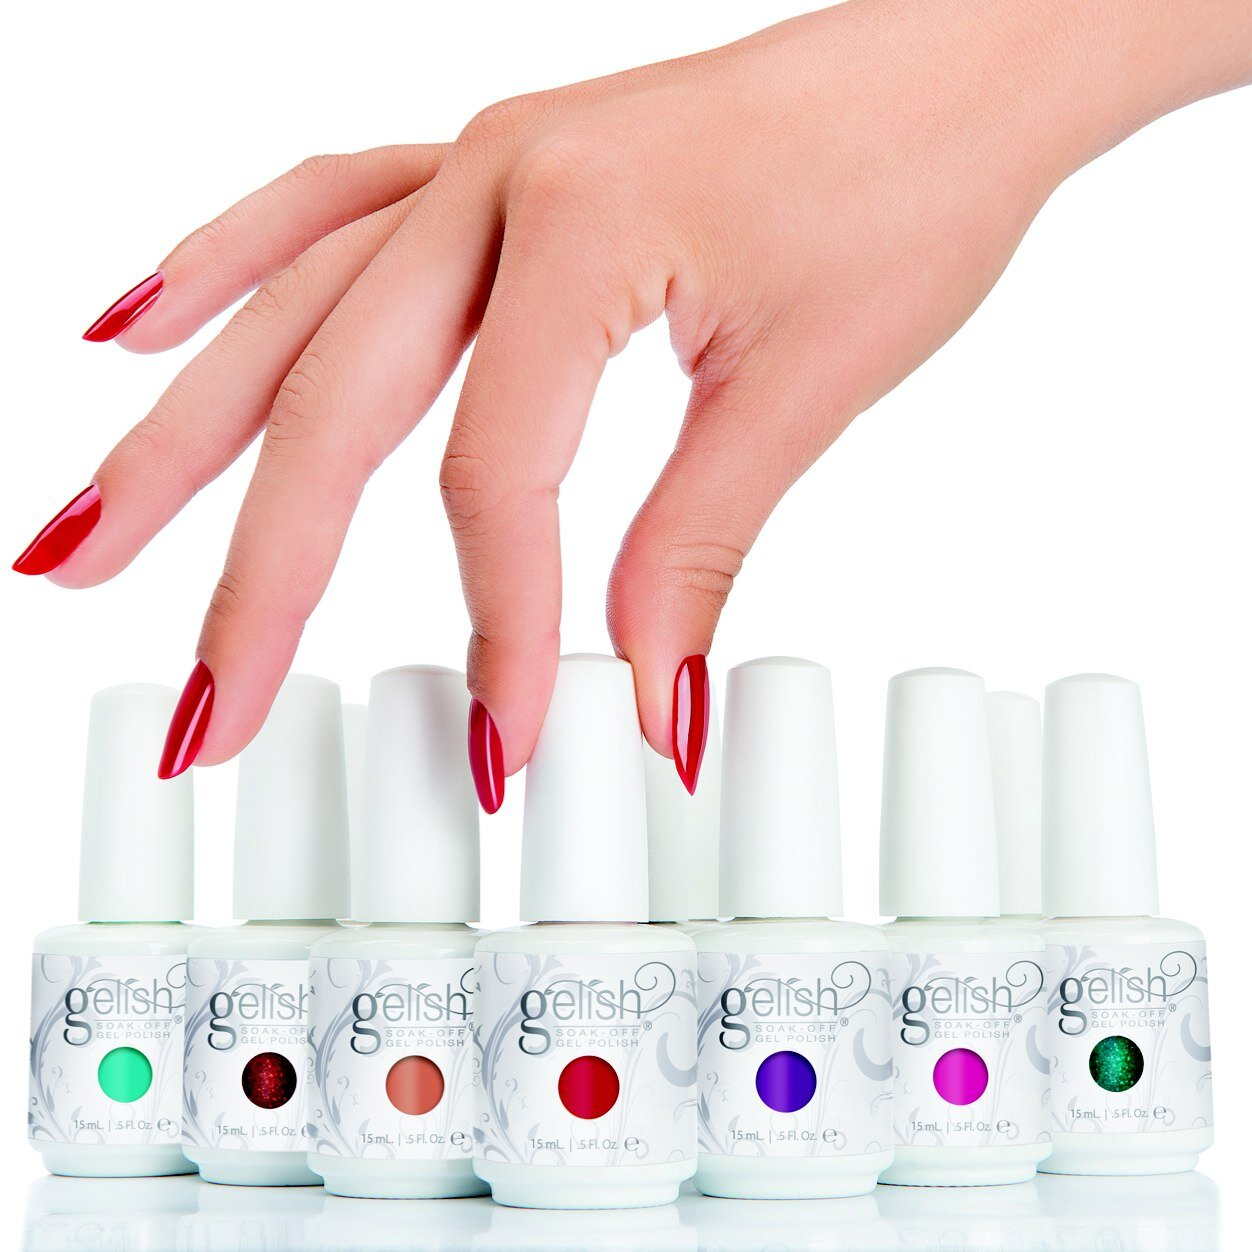 Gelish fingers toes bellissimo limerick for 33 fingers salon reviews